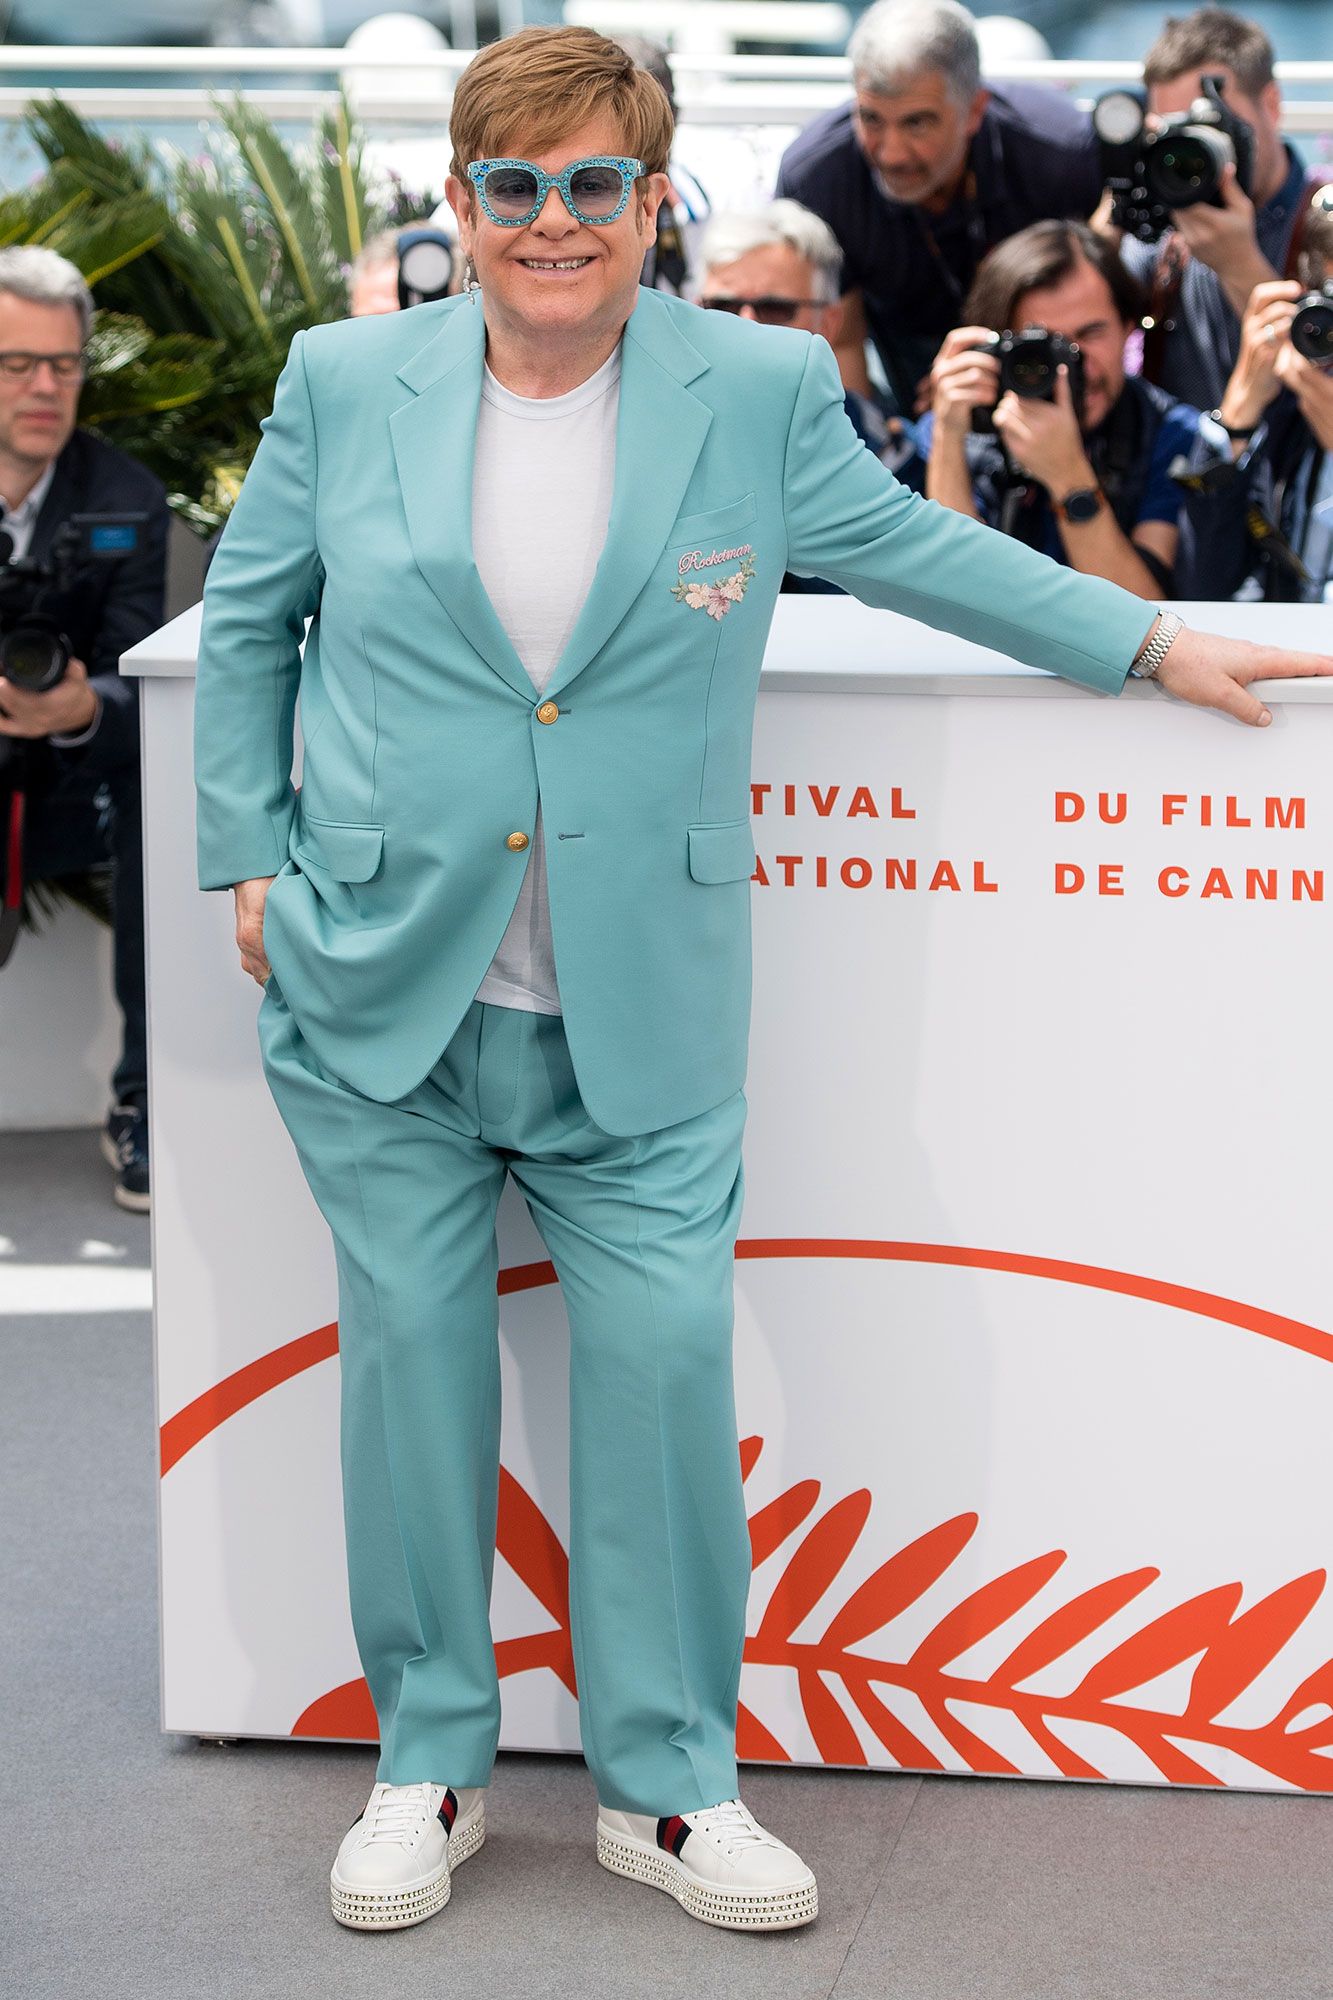 Elton John Cannes Film Festival 2019 Most Stylish Guys Red Carpet - When in doubt, match your crystal-embellished glasses to your pastel suit as the music legend did at the Rocketman photo-call on Thursday, May 16.